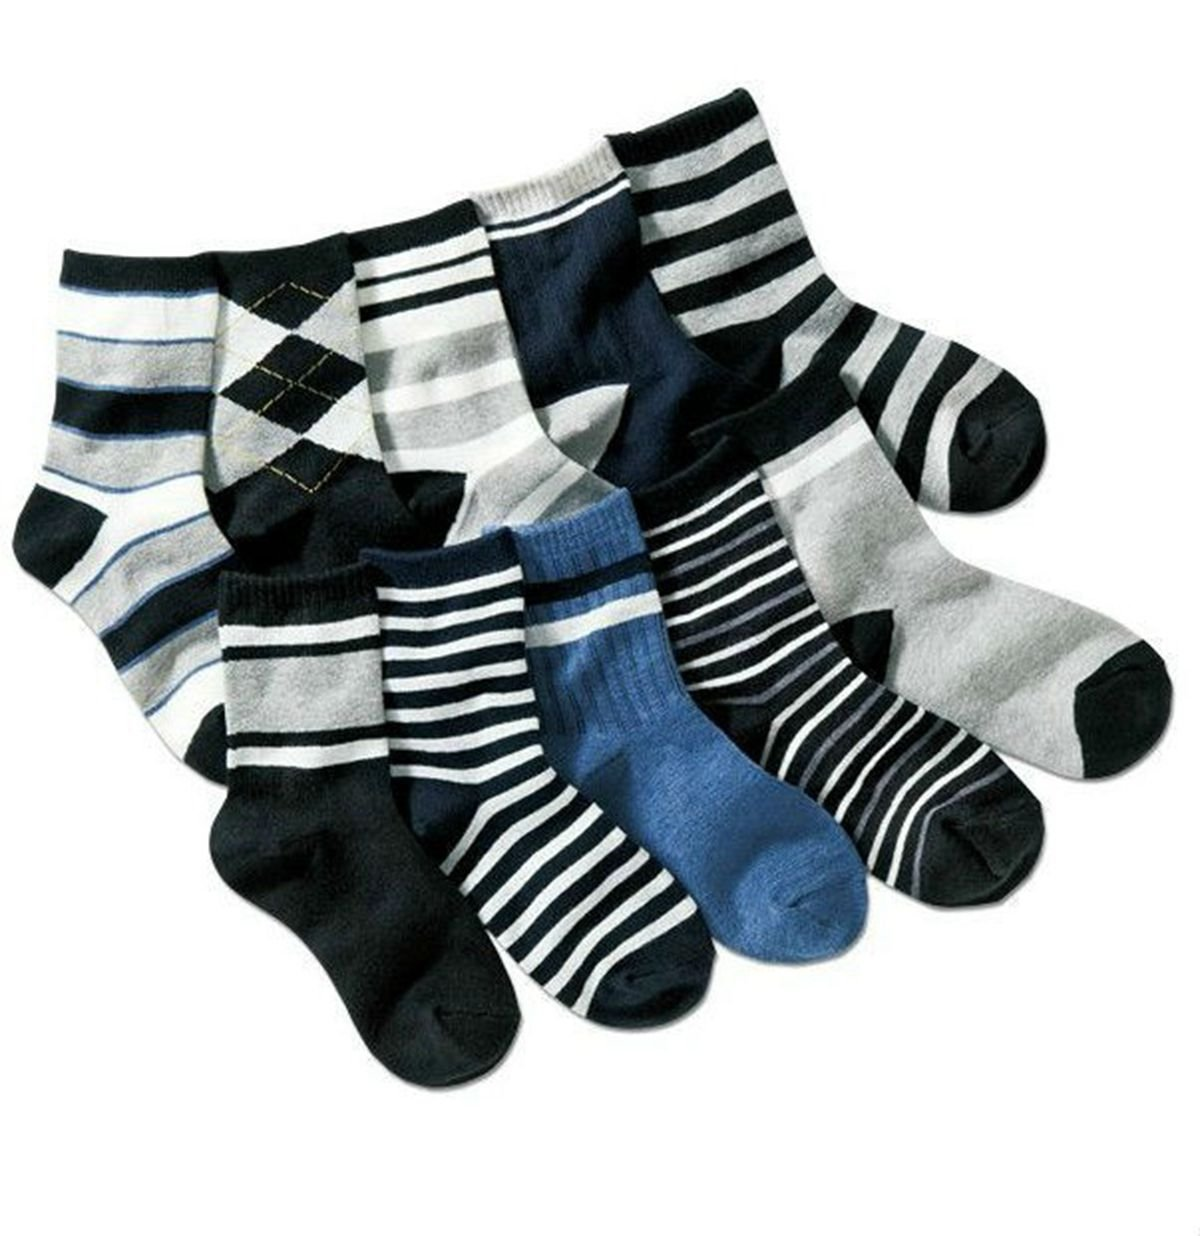 Boys Short Socks Fashion Comfort Cotton Basic Crew Kids Socks 10 Pair Pack